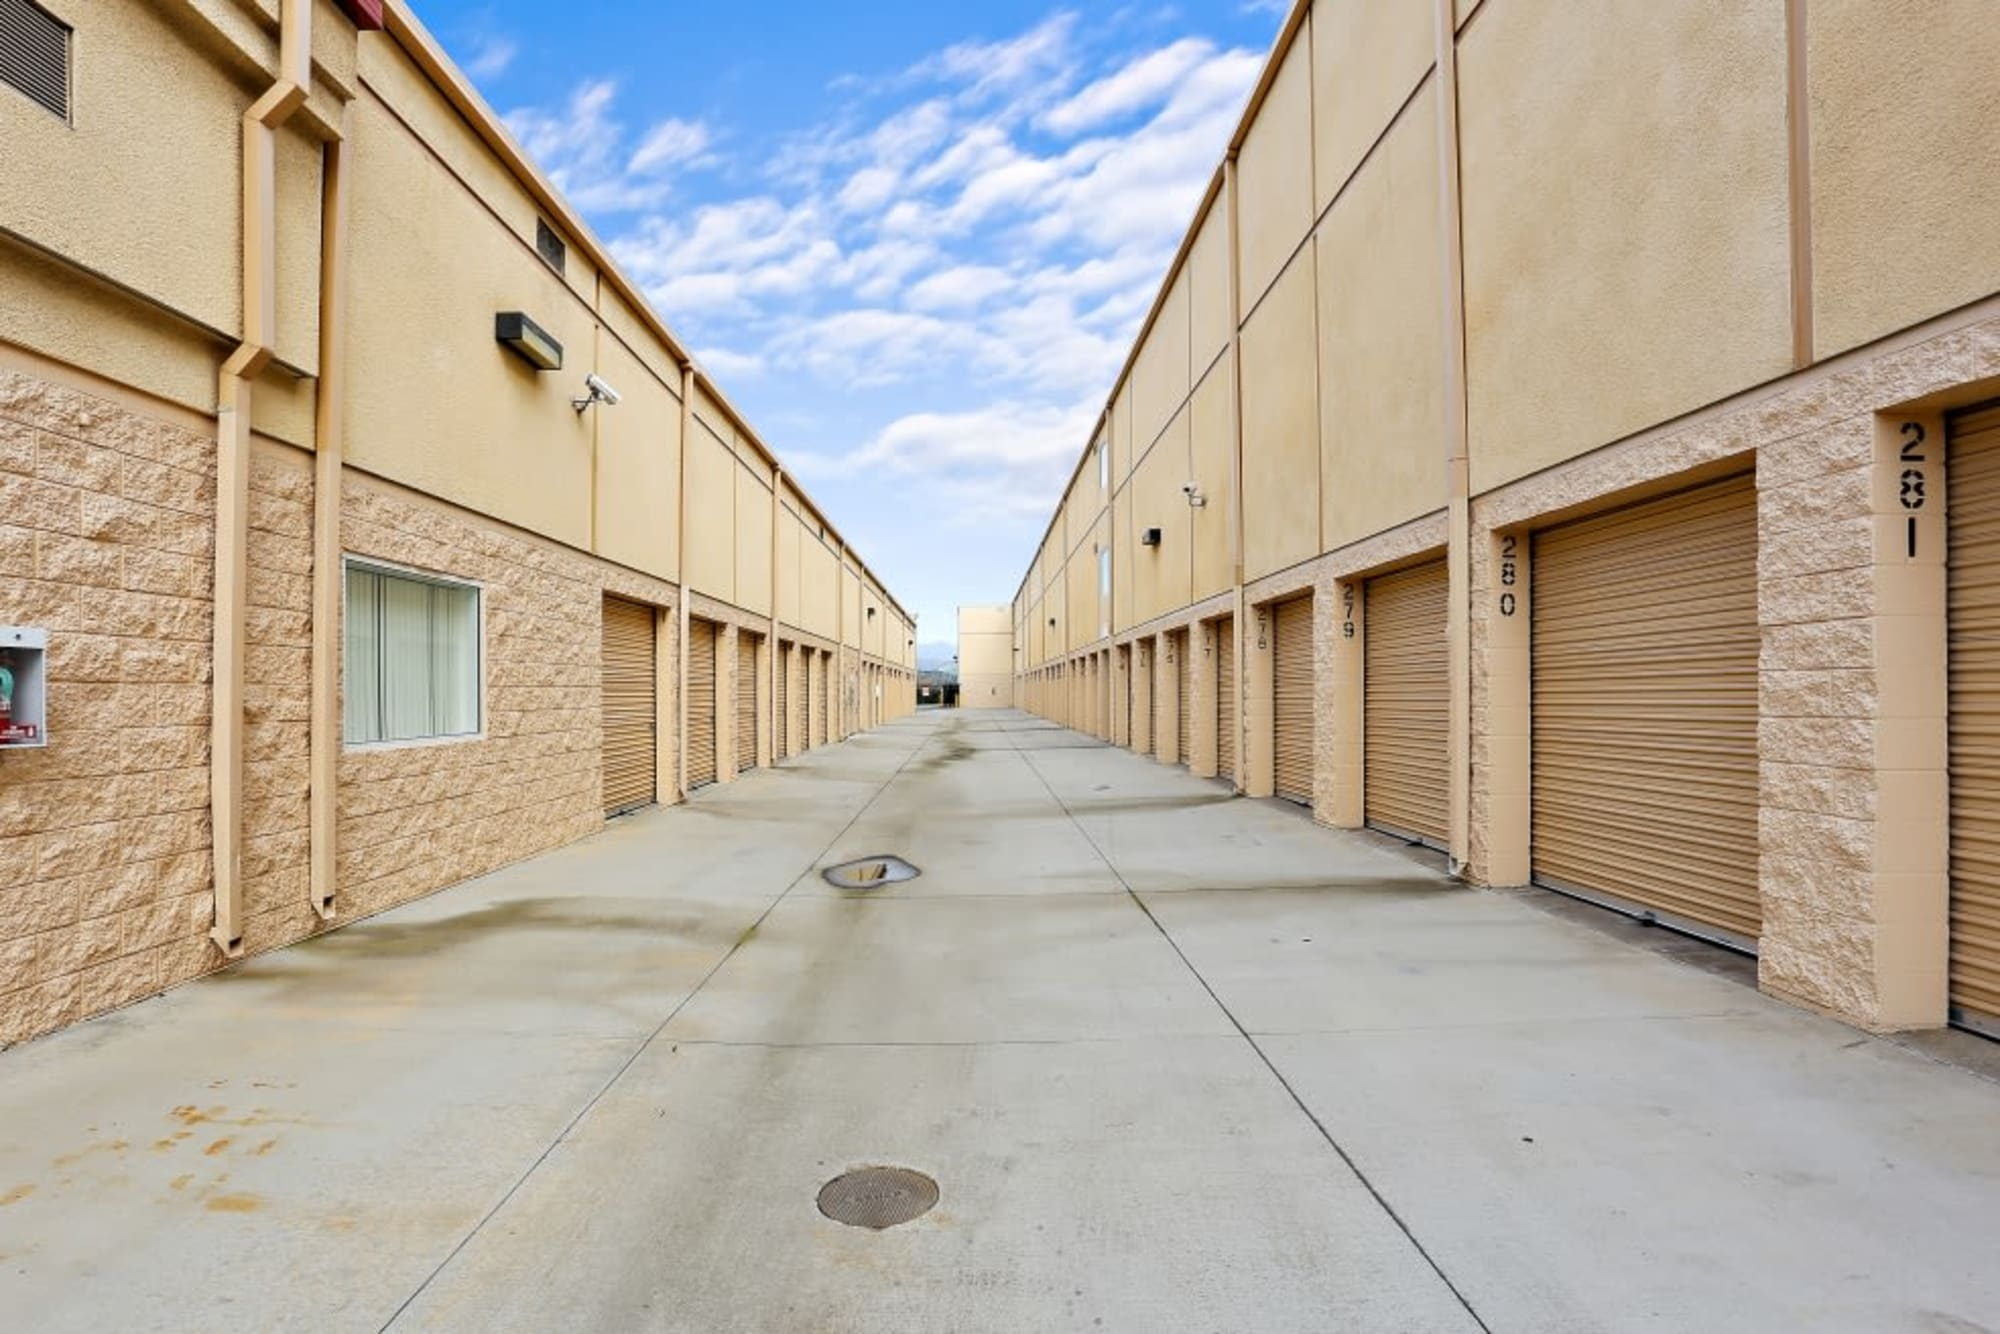 Convenient outdoor storage at A-1 Self Storage in Lakeside, California